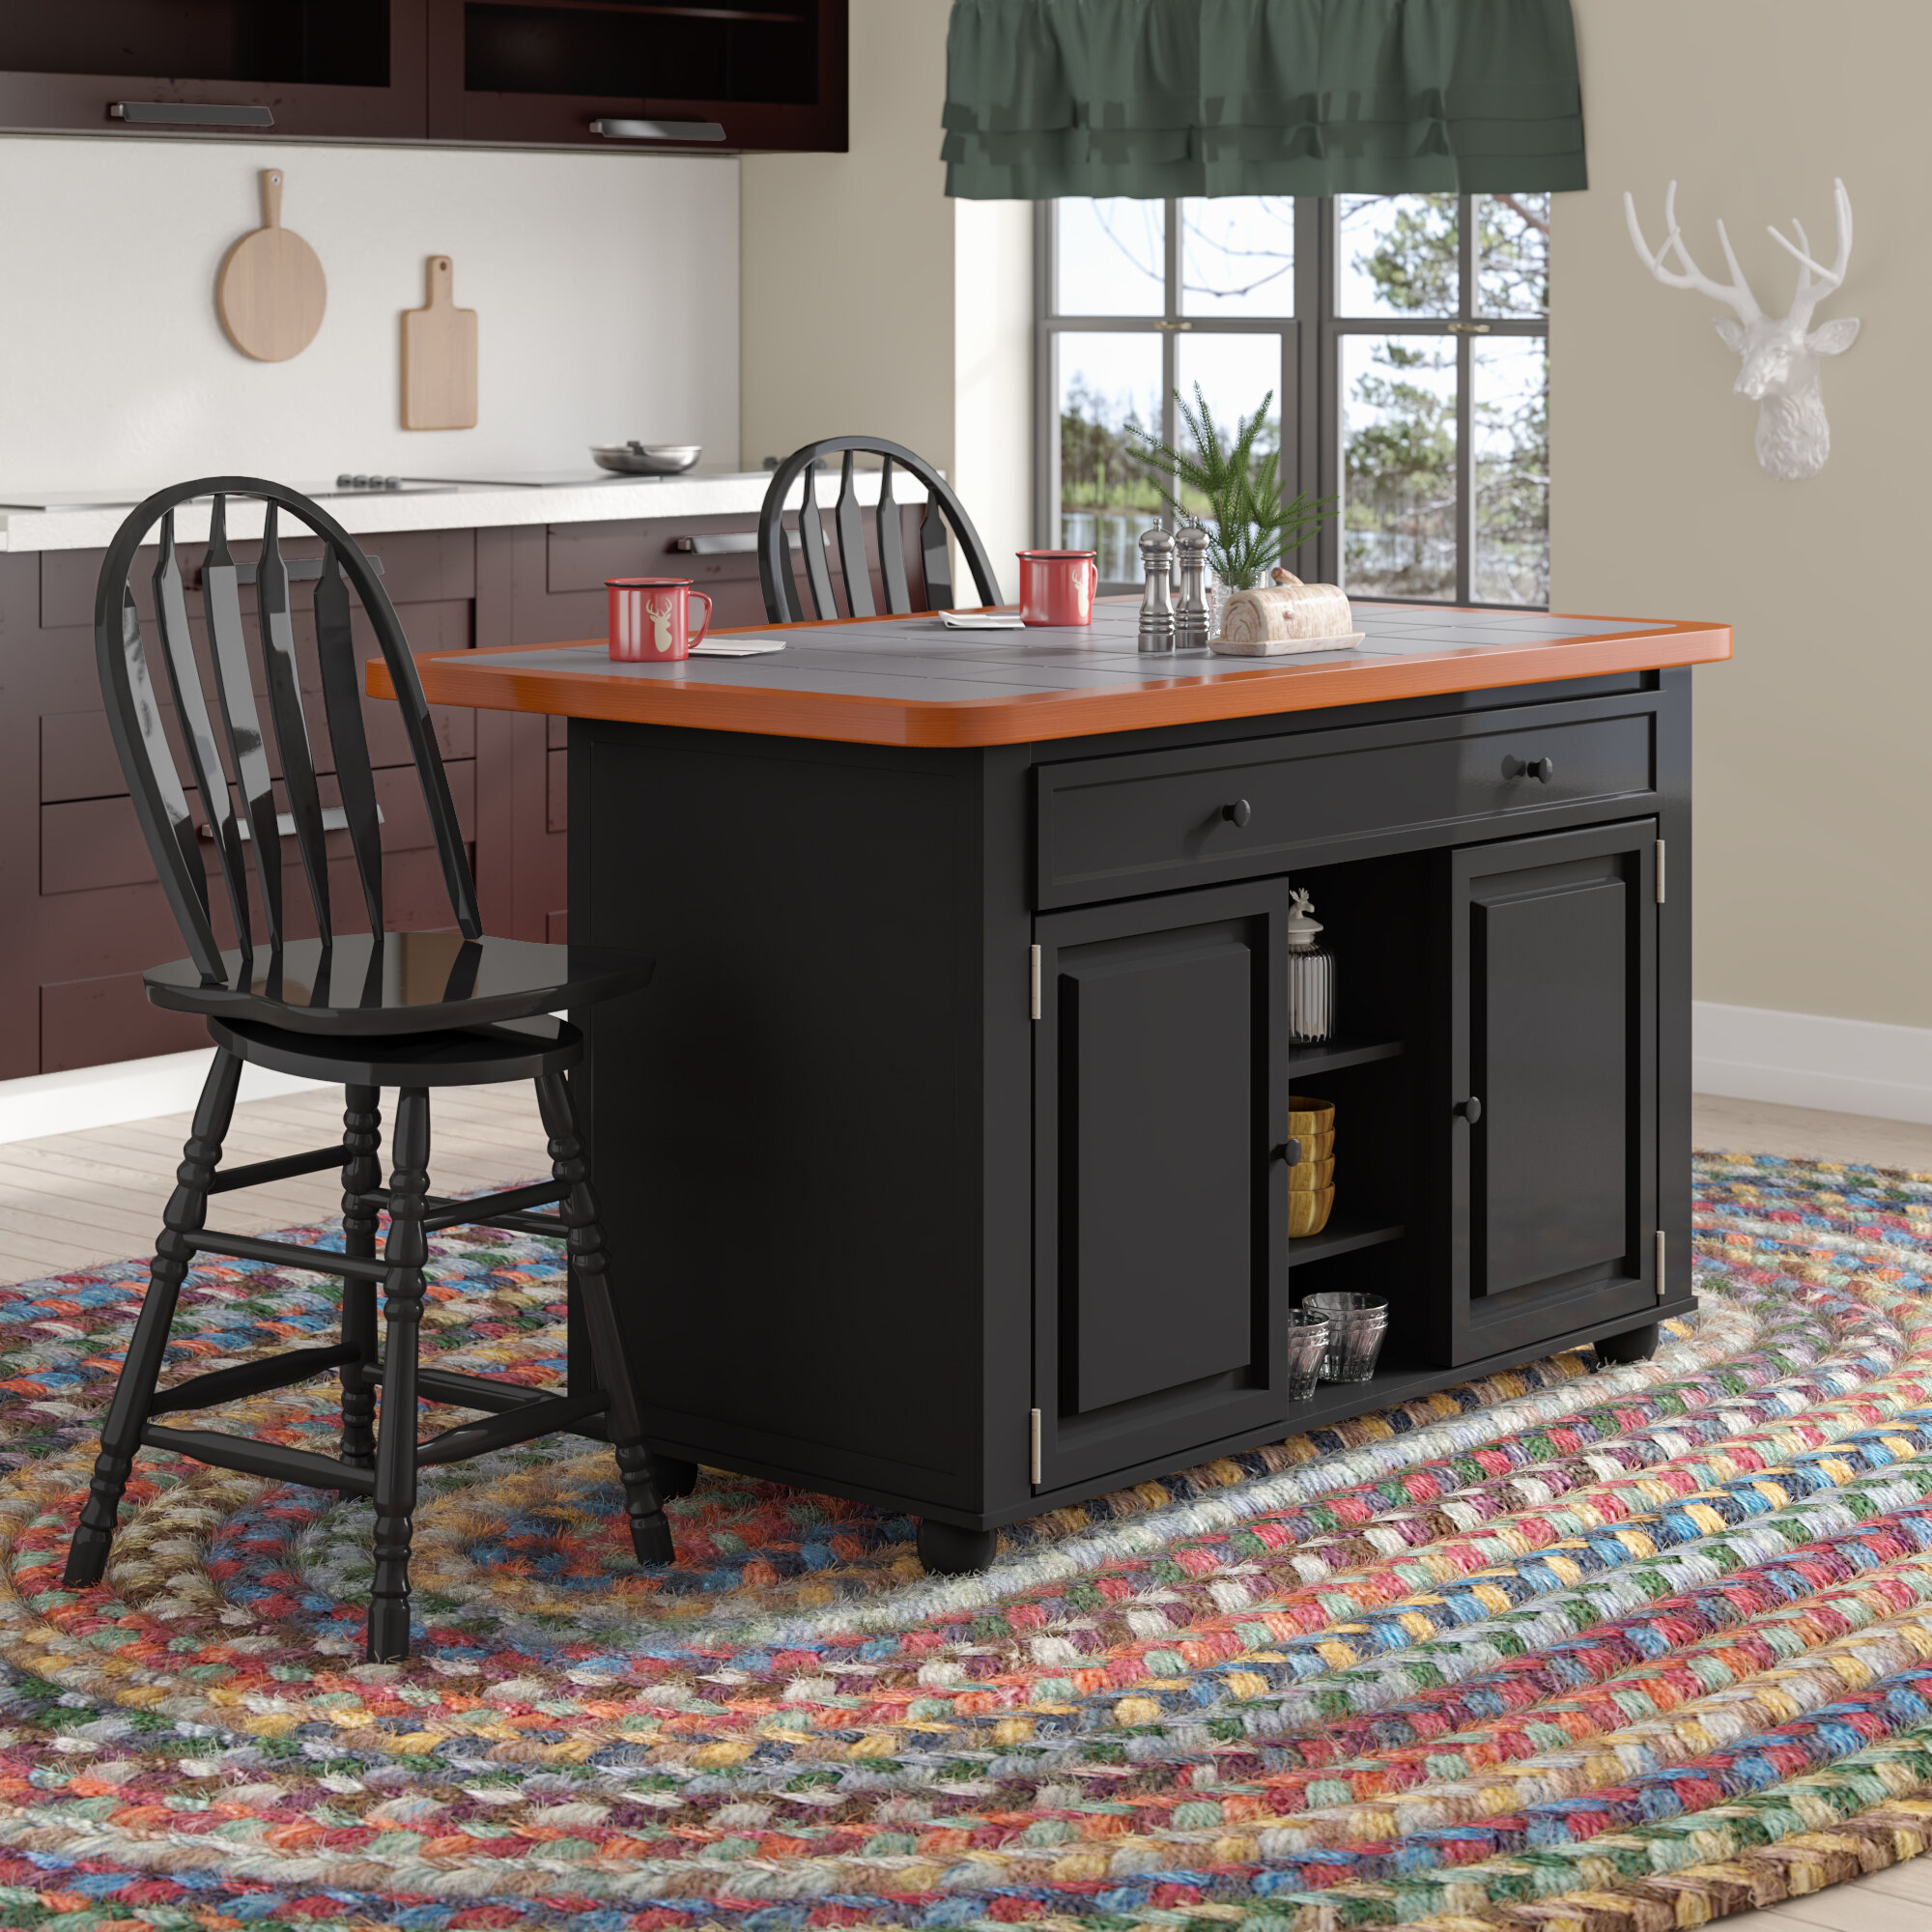 of countertop kitchen islands counter beautiful new stool stools fresh with island